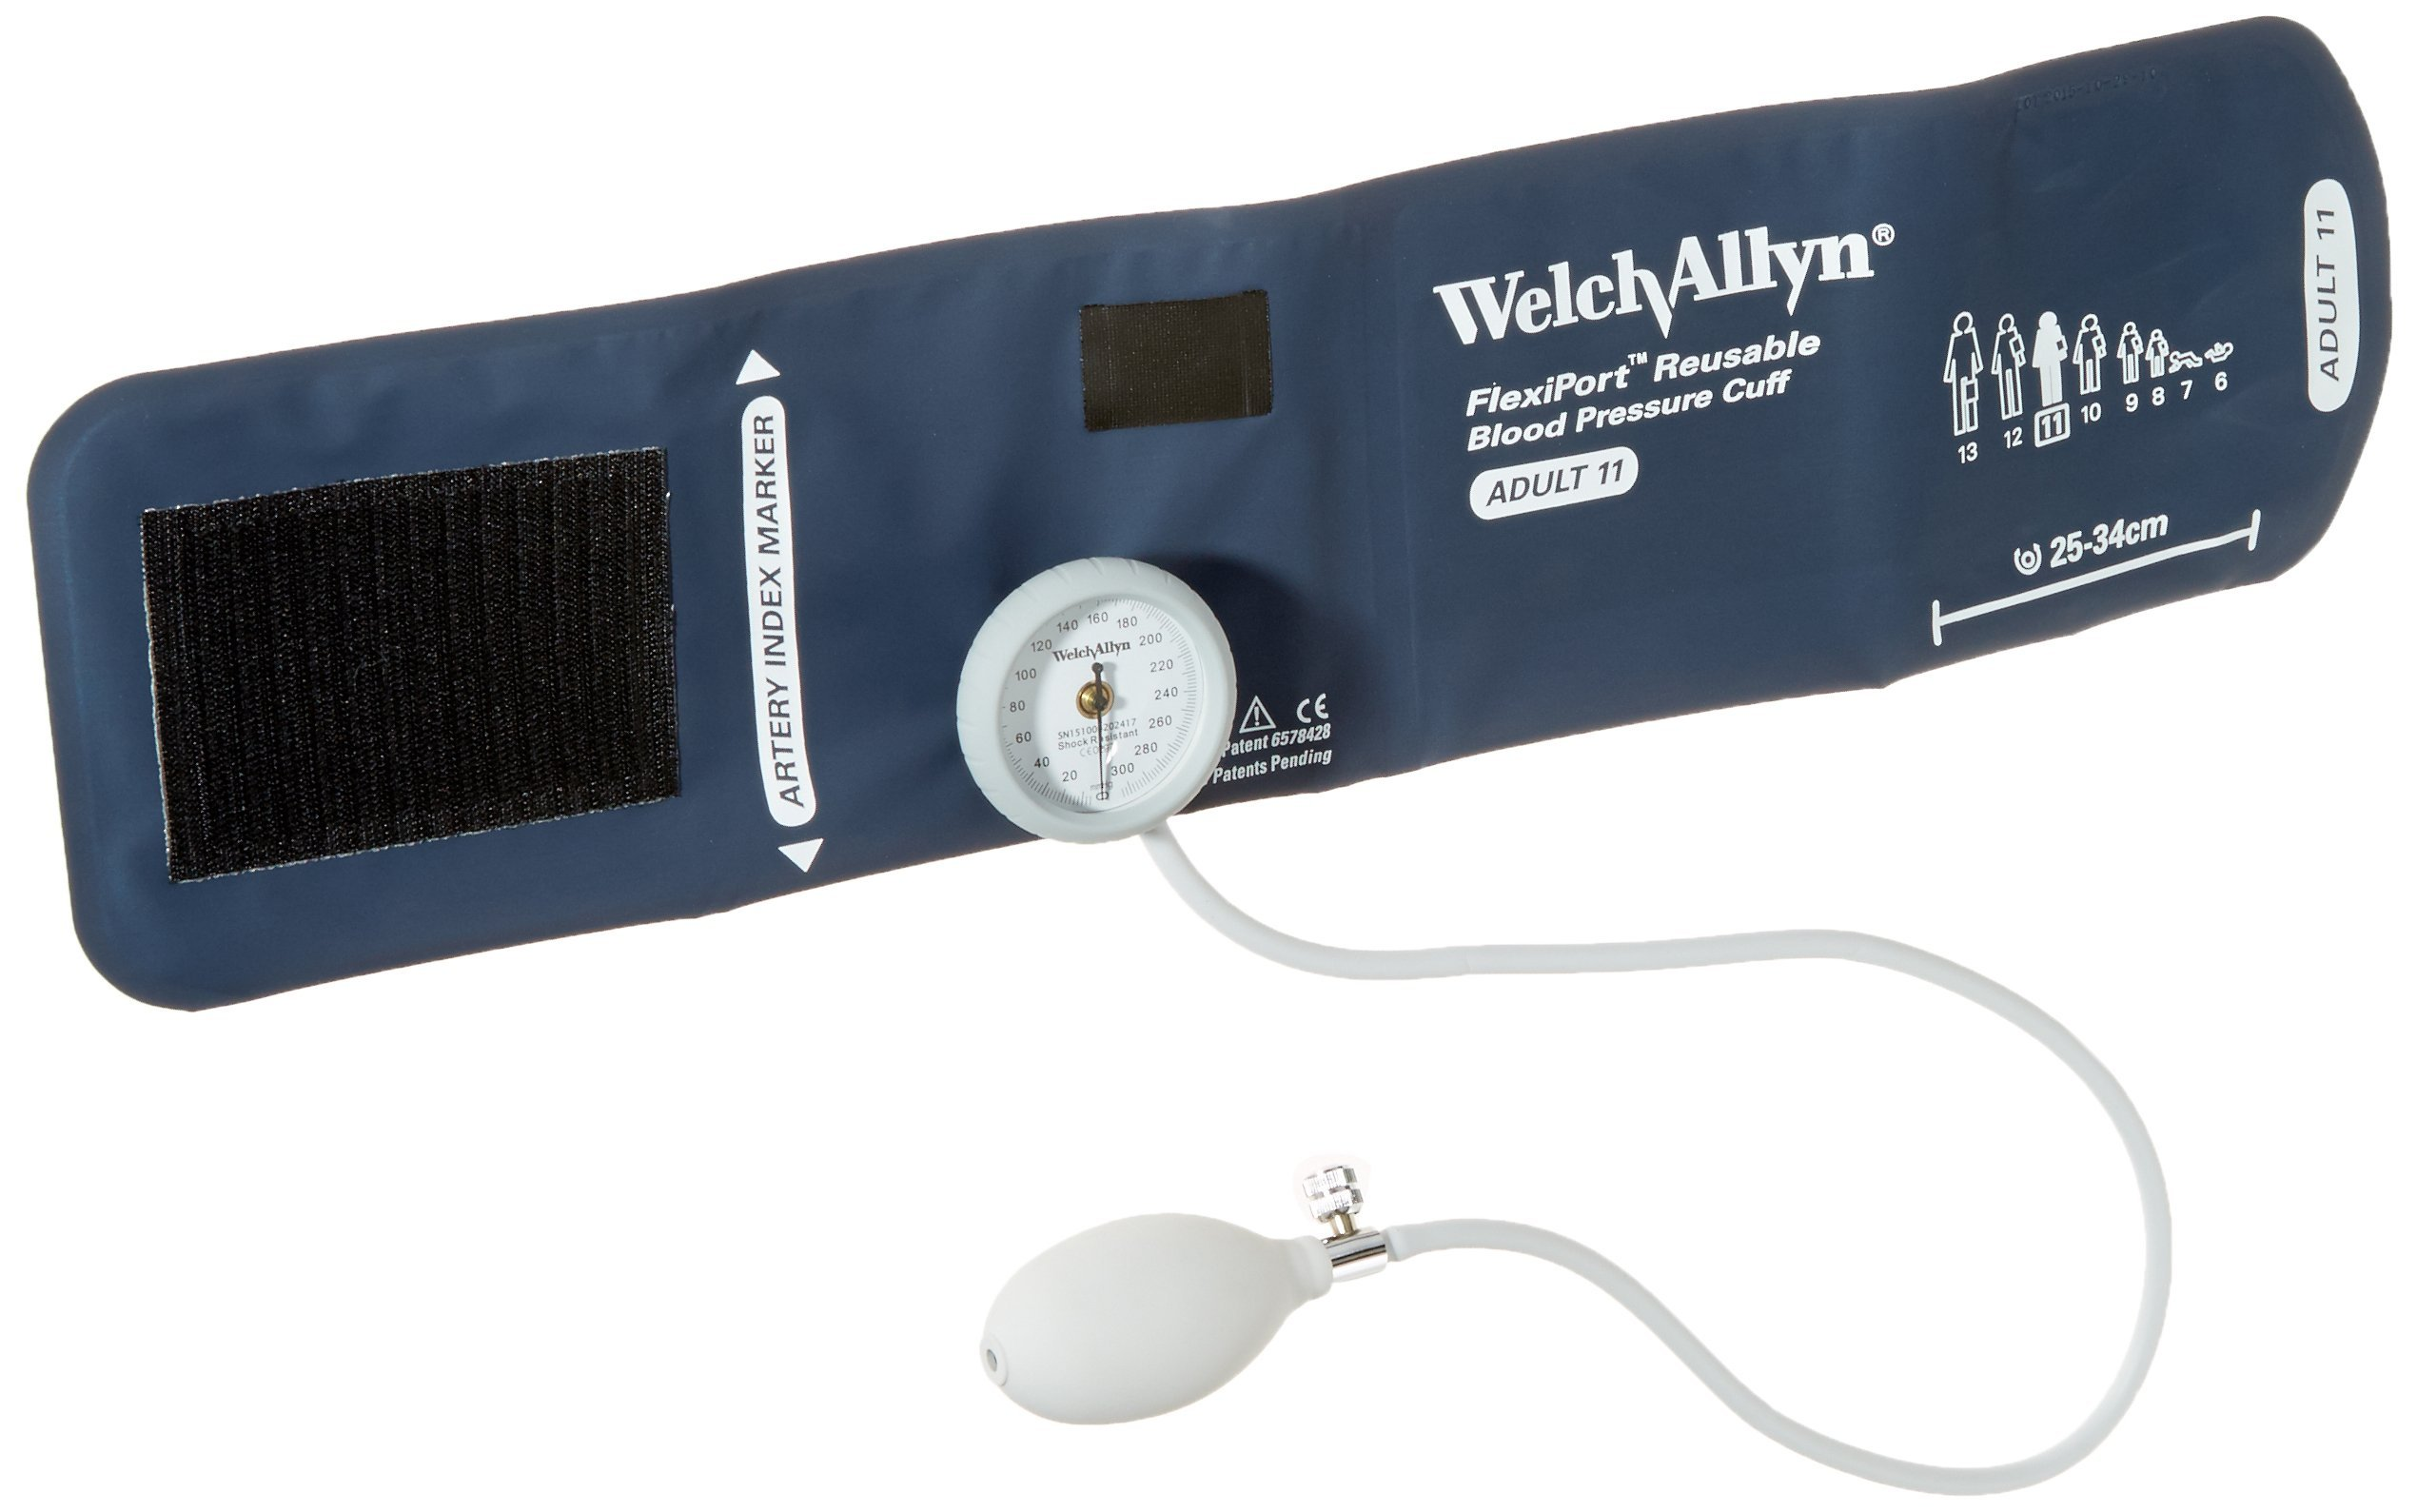 Welch Allyn DS44-11 Gauge with Durable One Piece Cuff, Adult